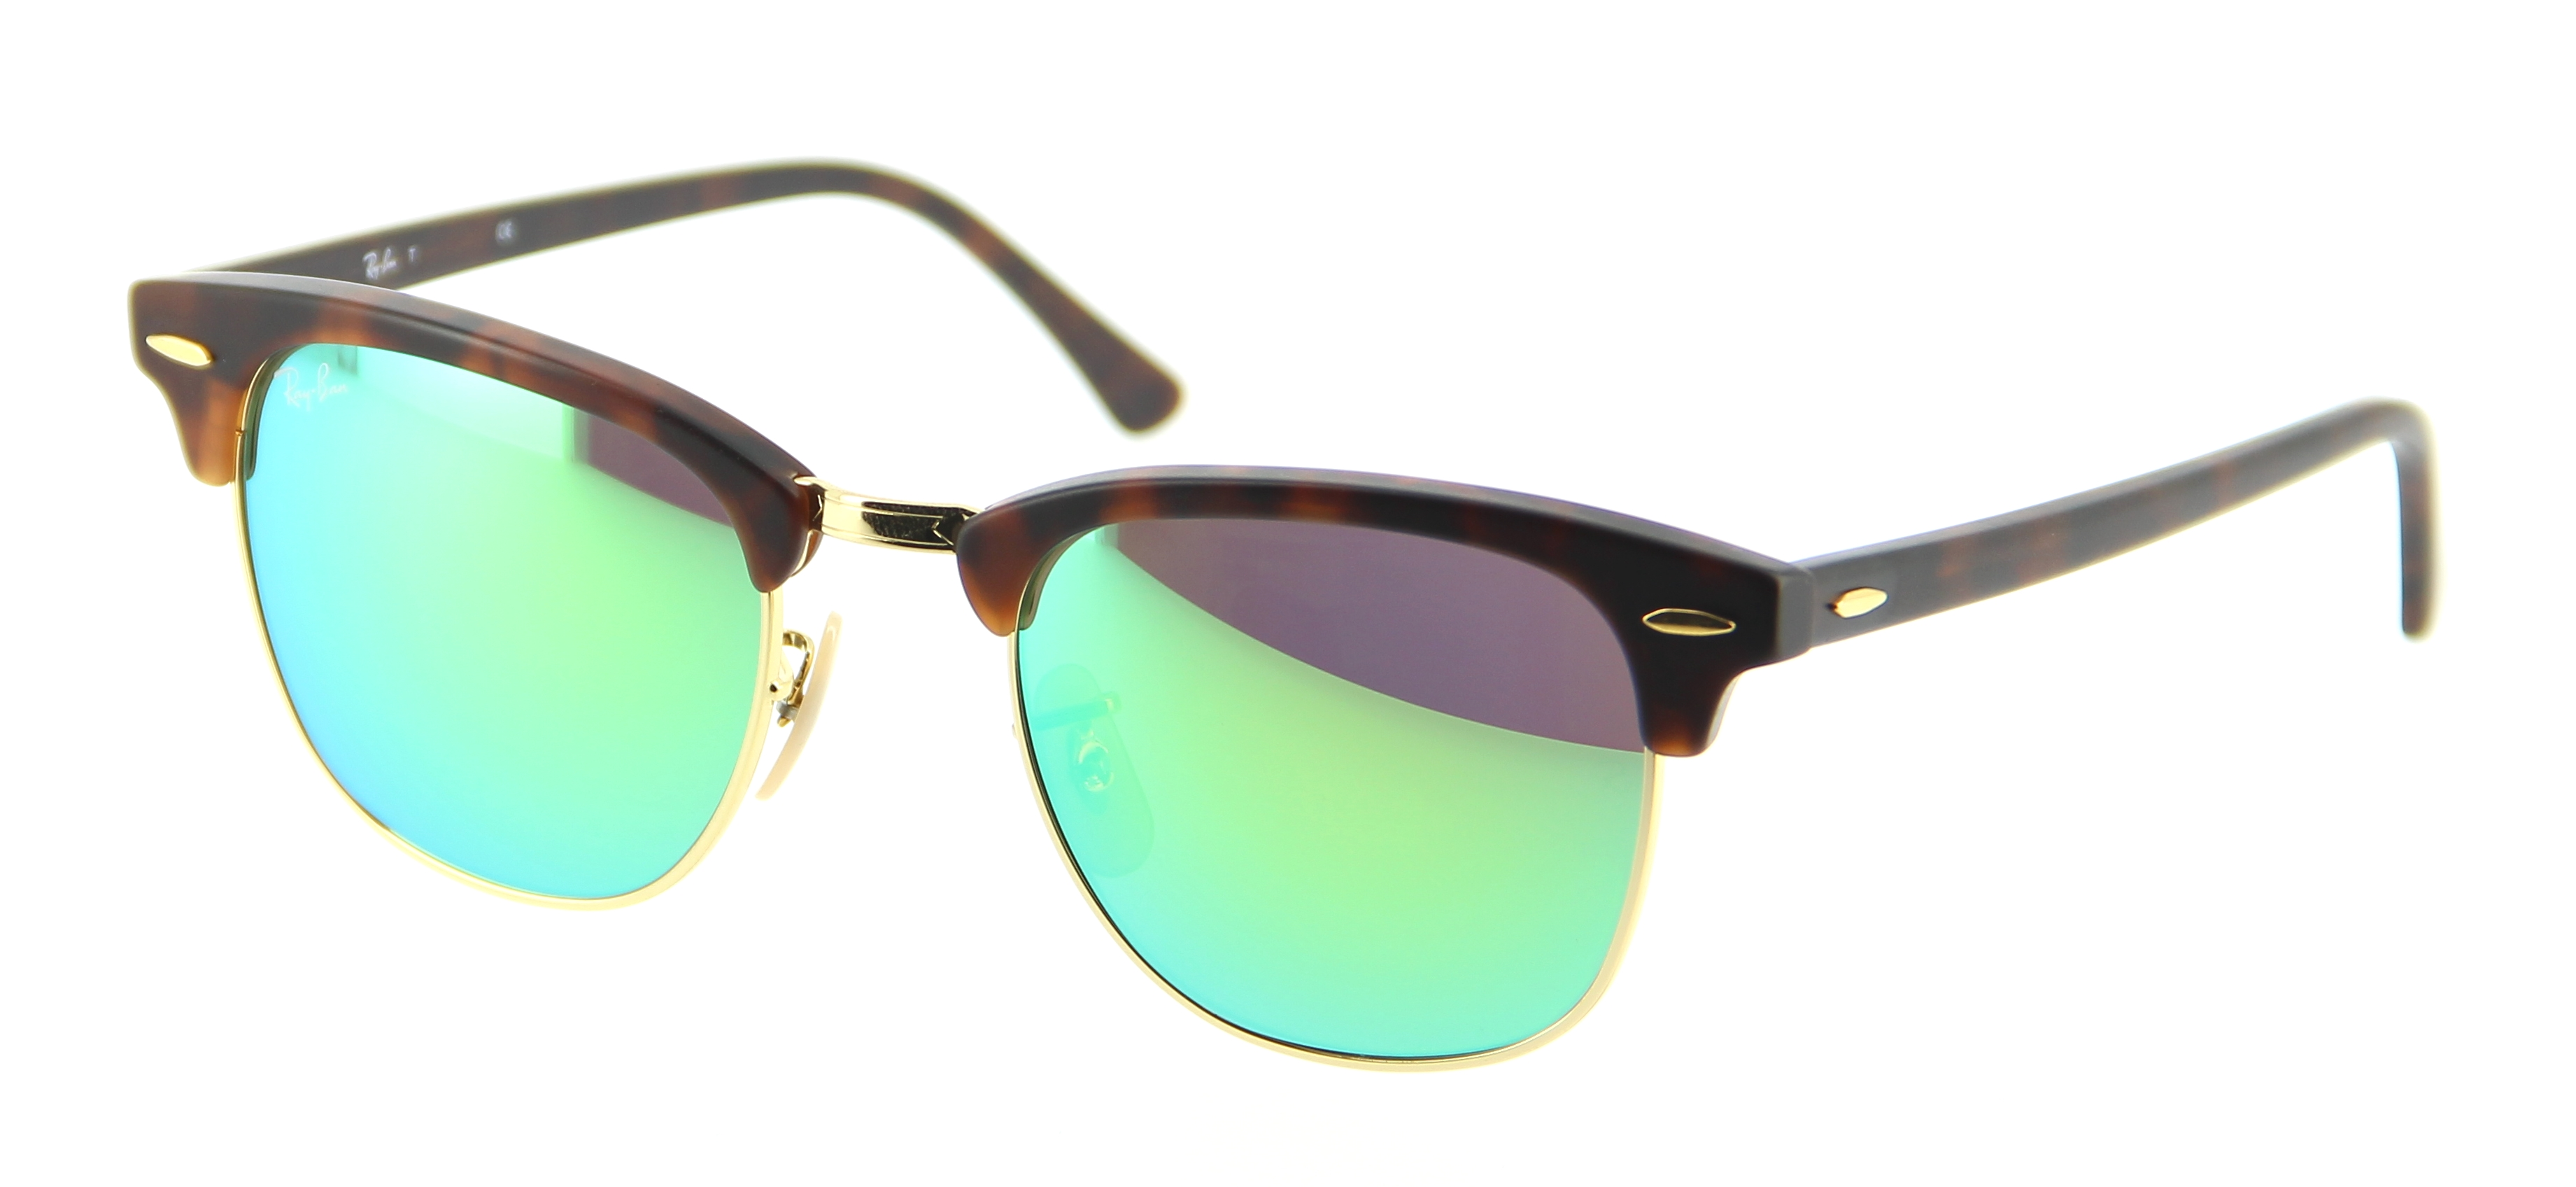 2da8b85bb5fb8 Optical Center Ray Ban Clubmaster